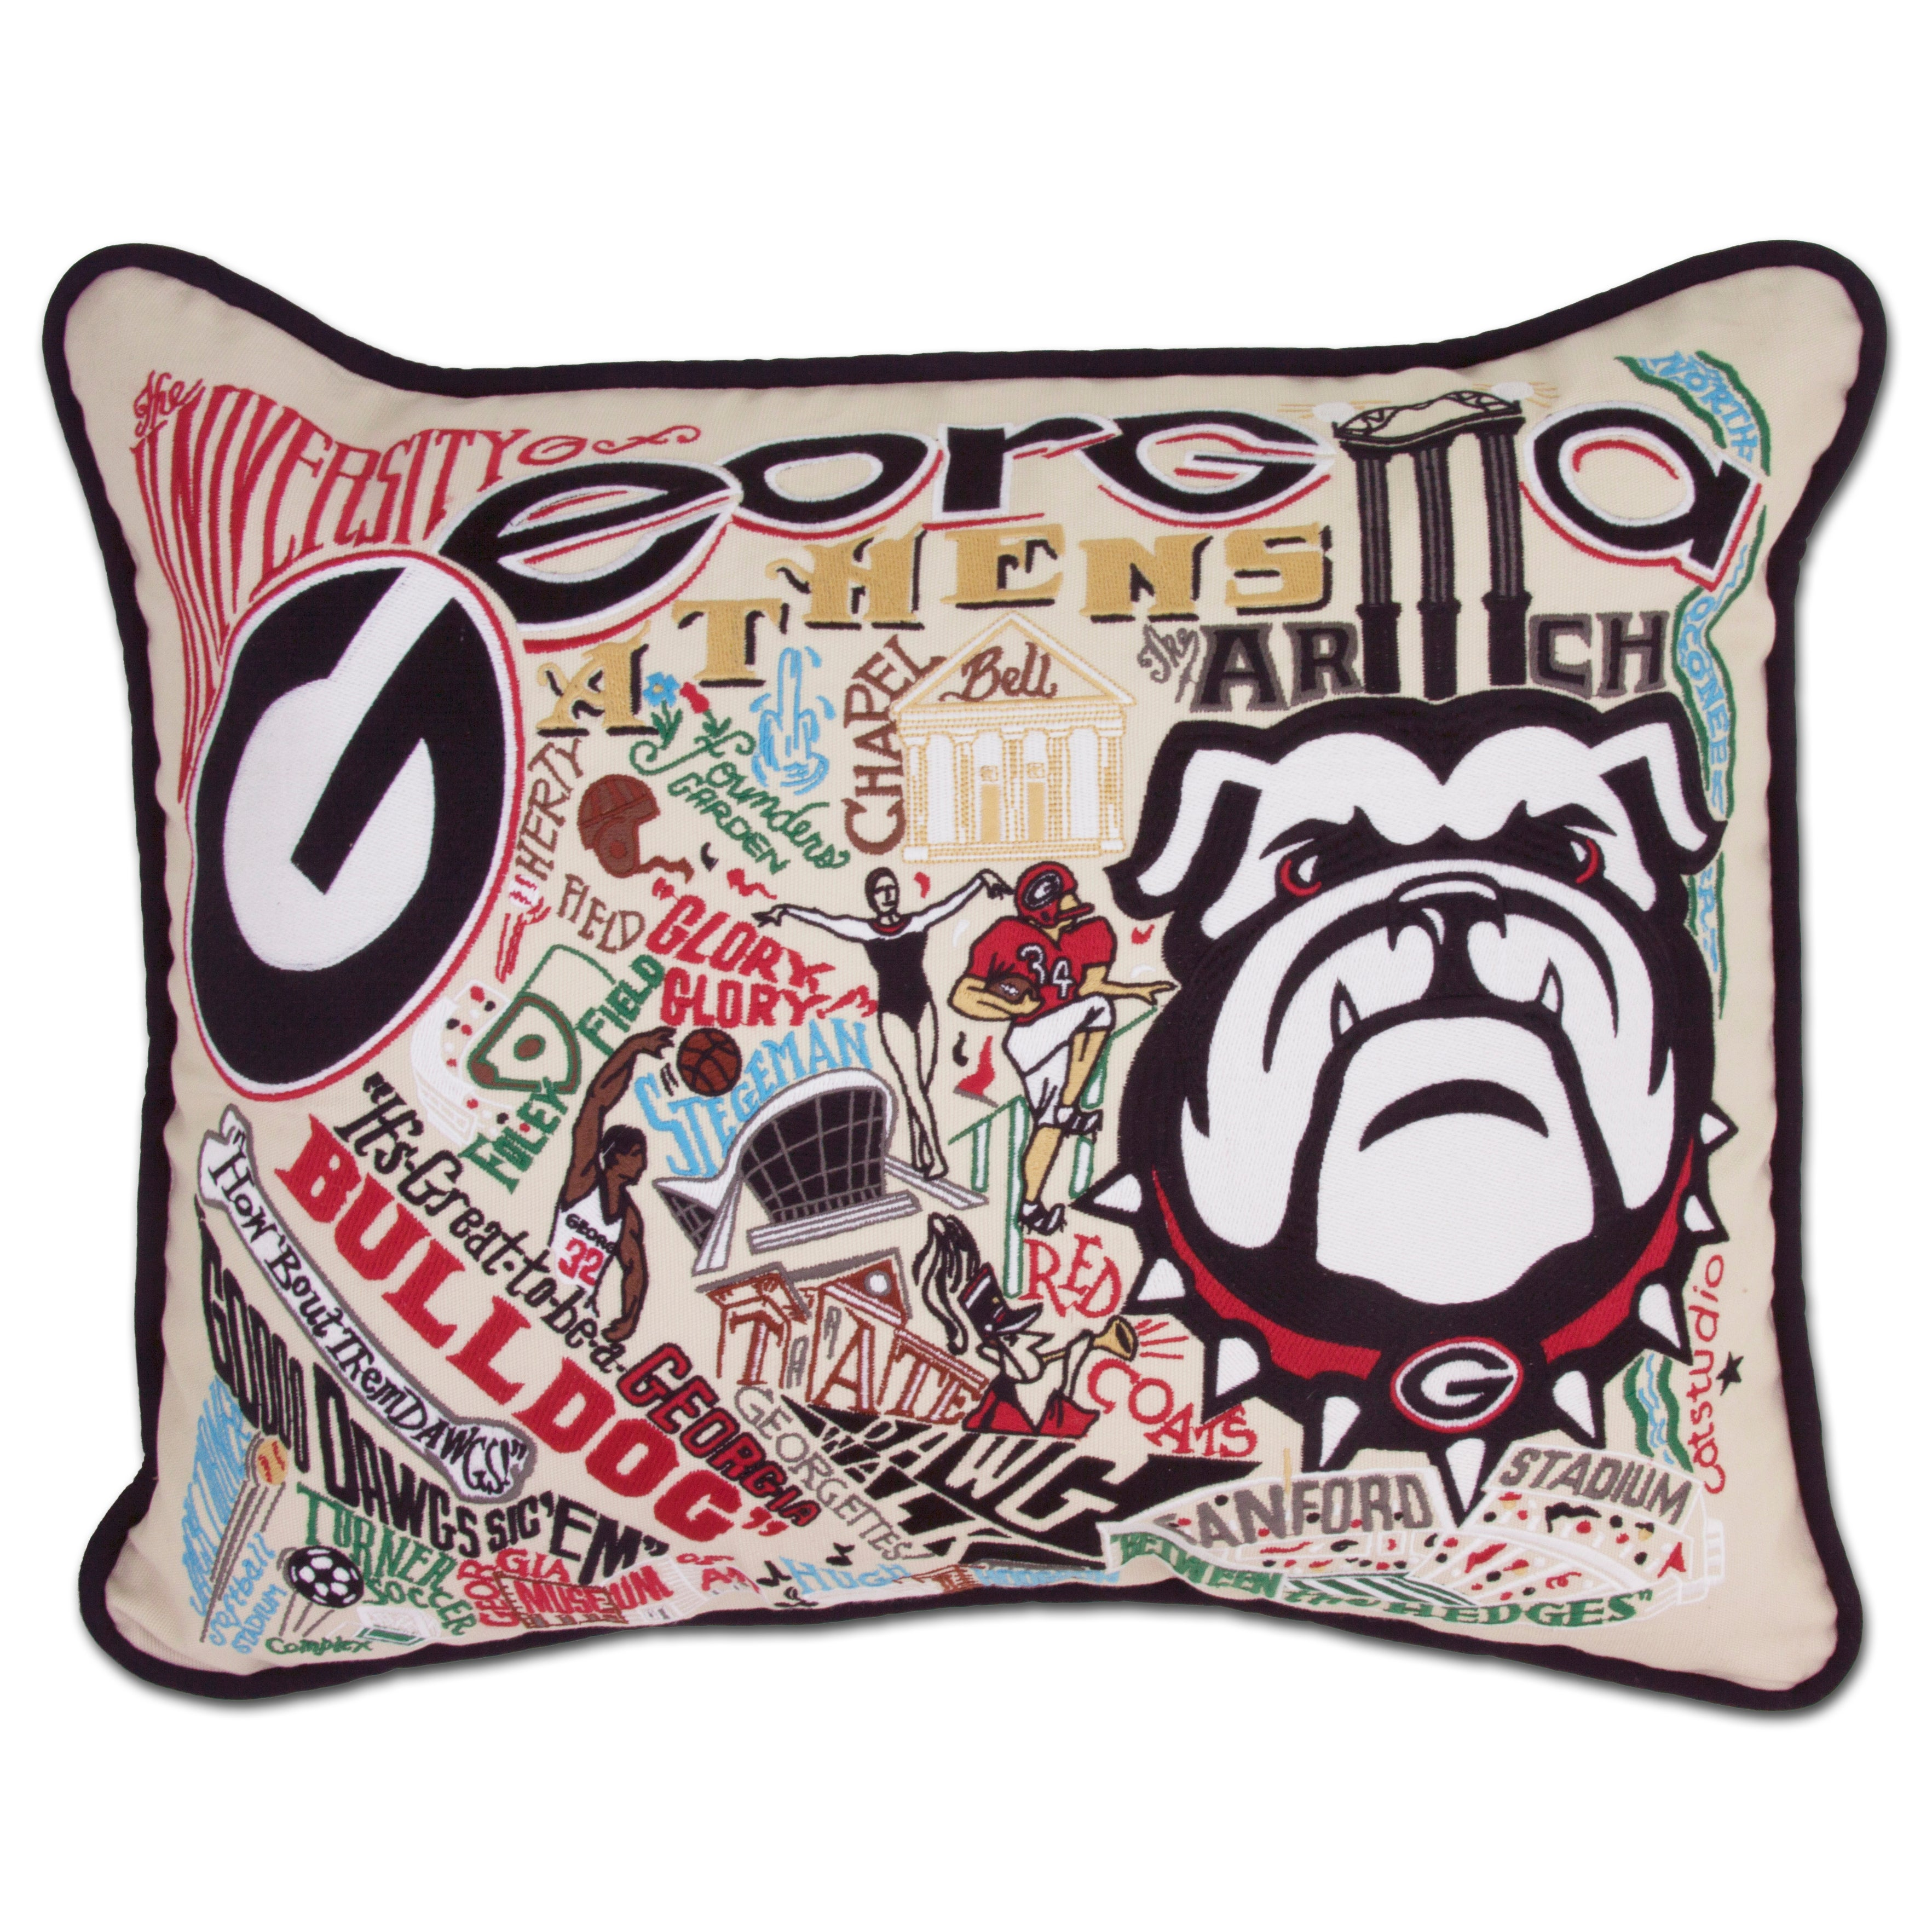 University of Georgia Collegiate Embroidered Pillow